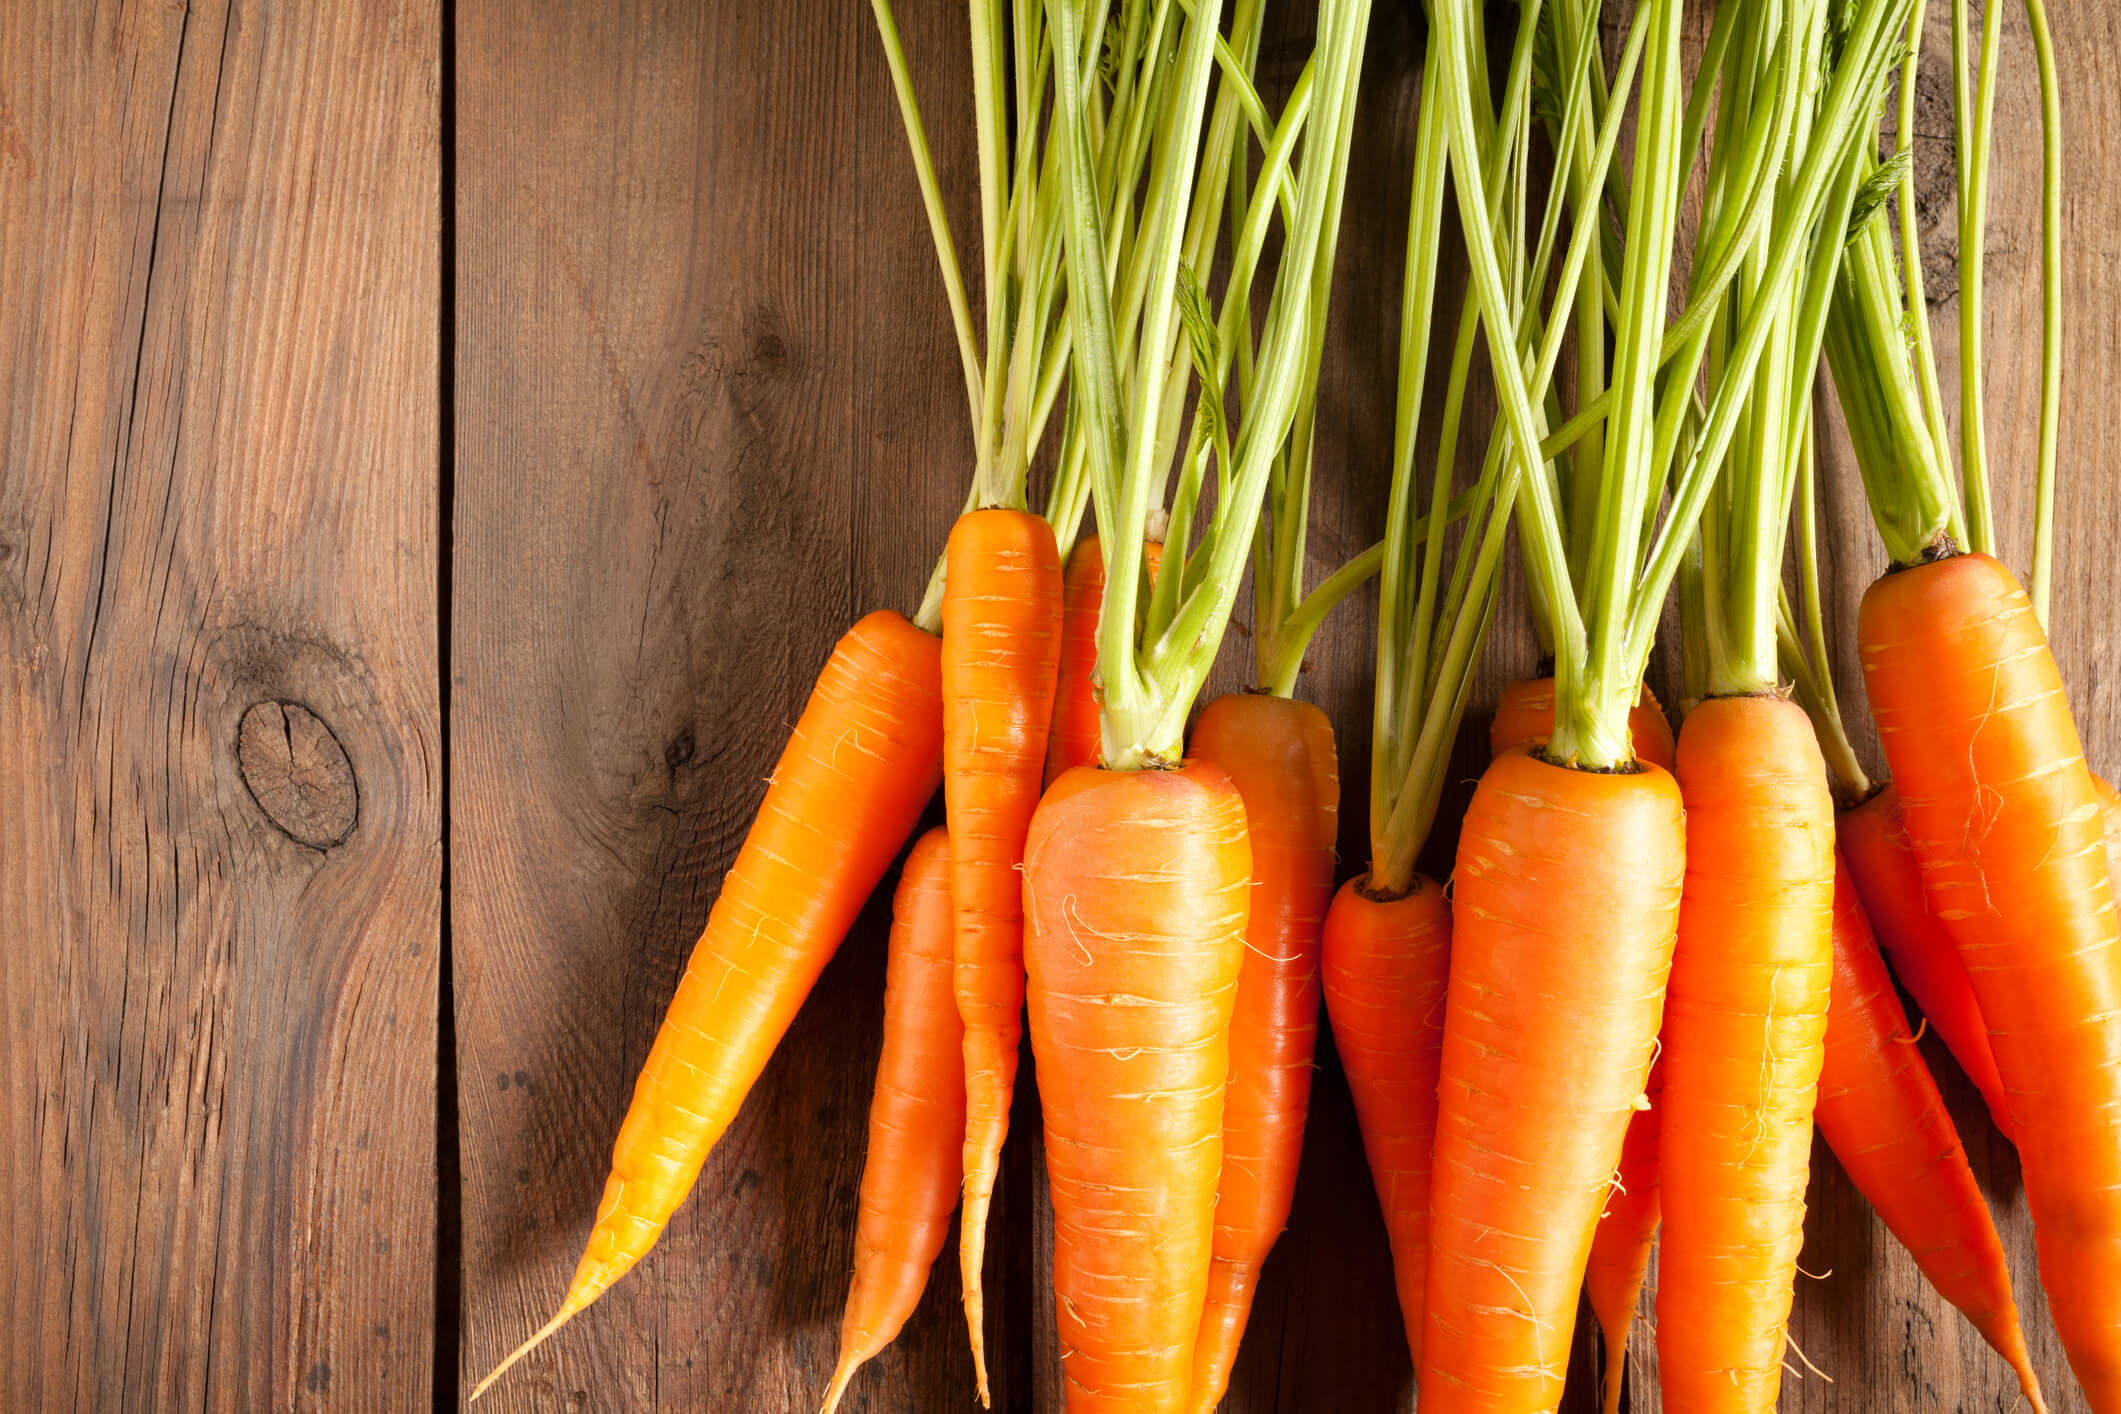 Spring vegetables and fruits: carrots